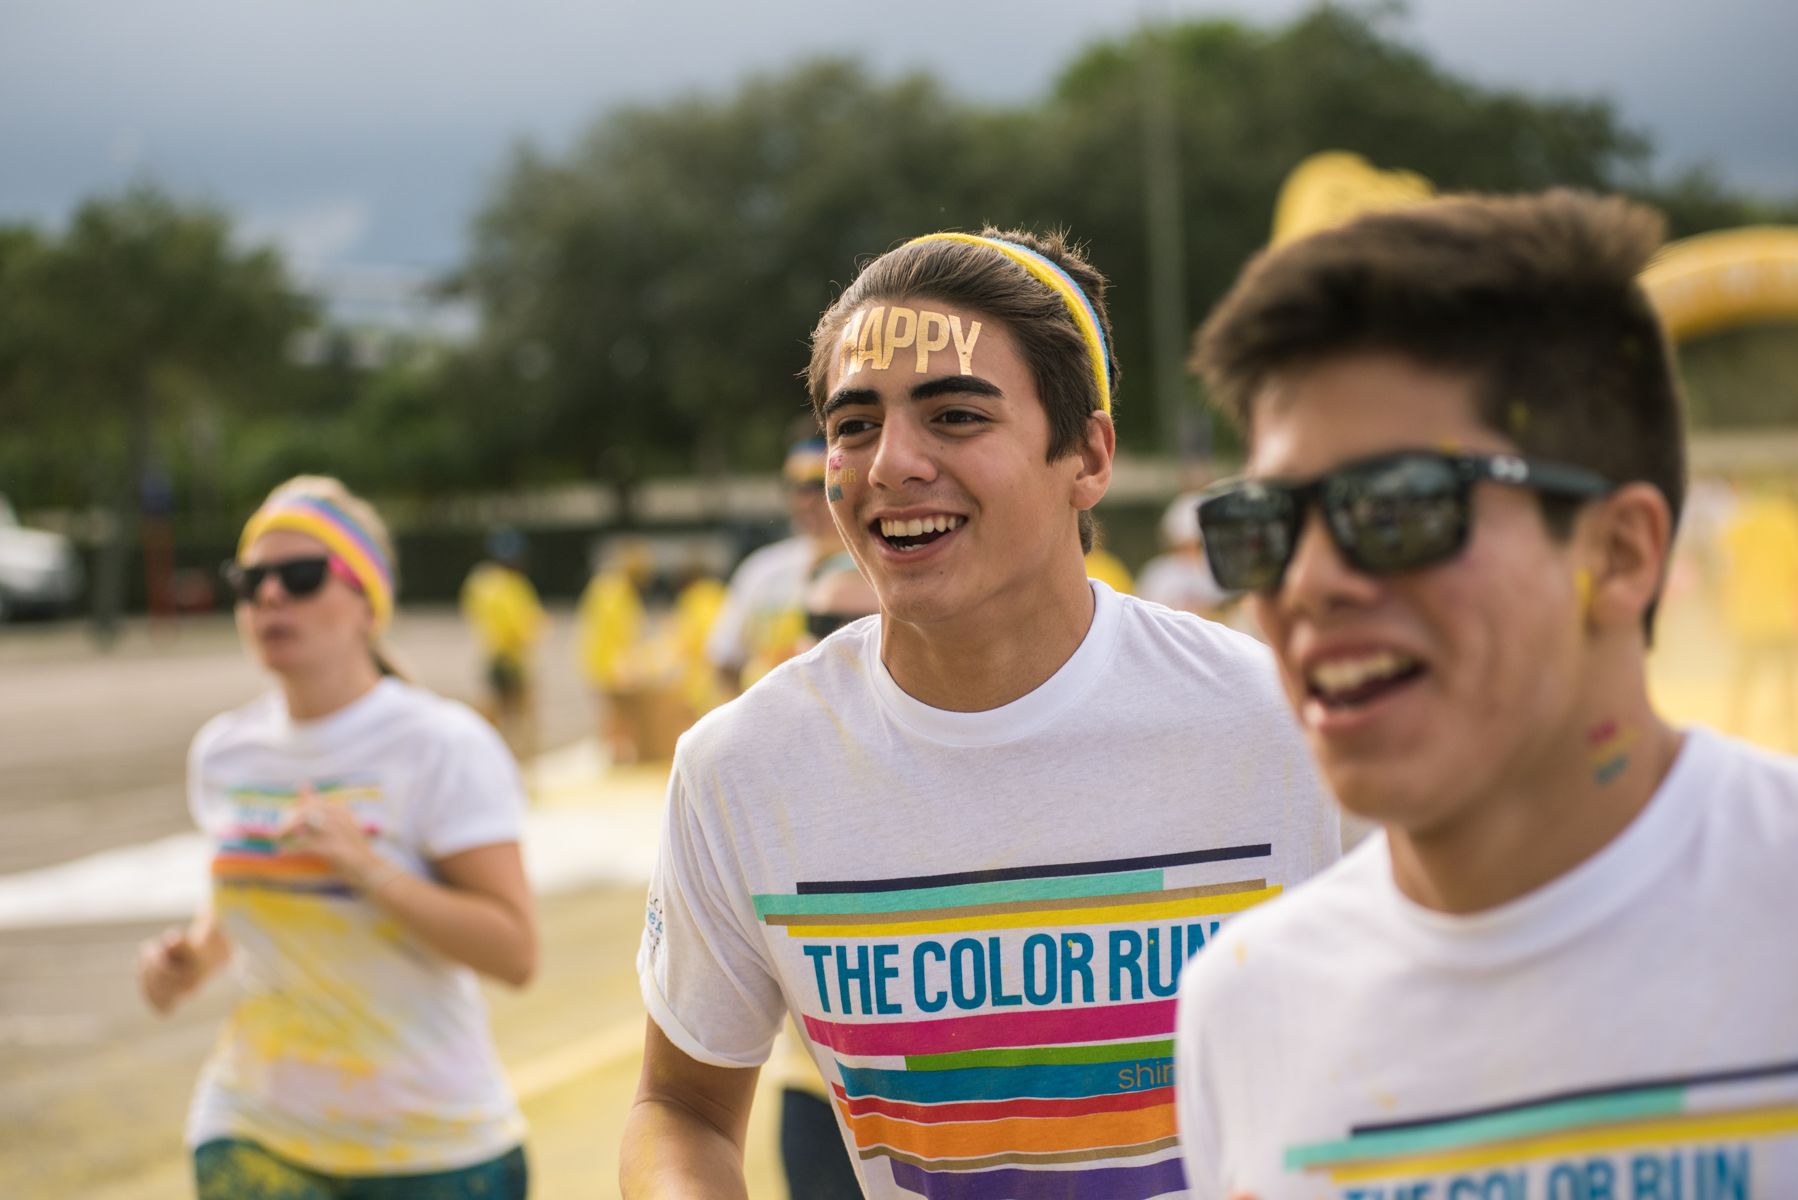 Color_Run-15.jpg